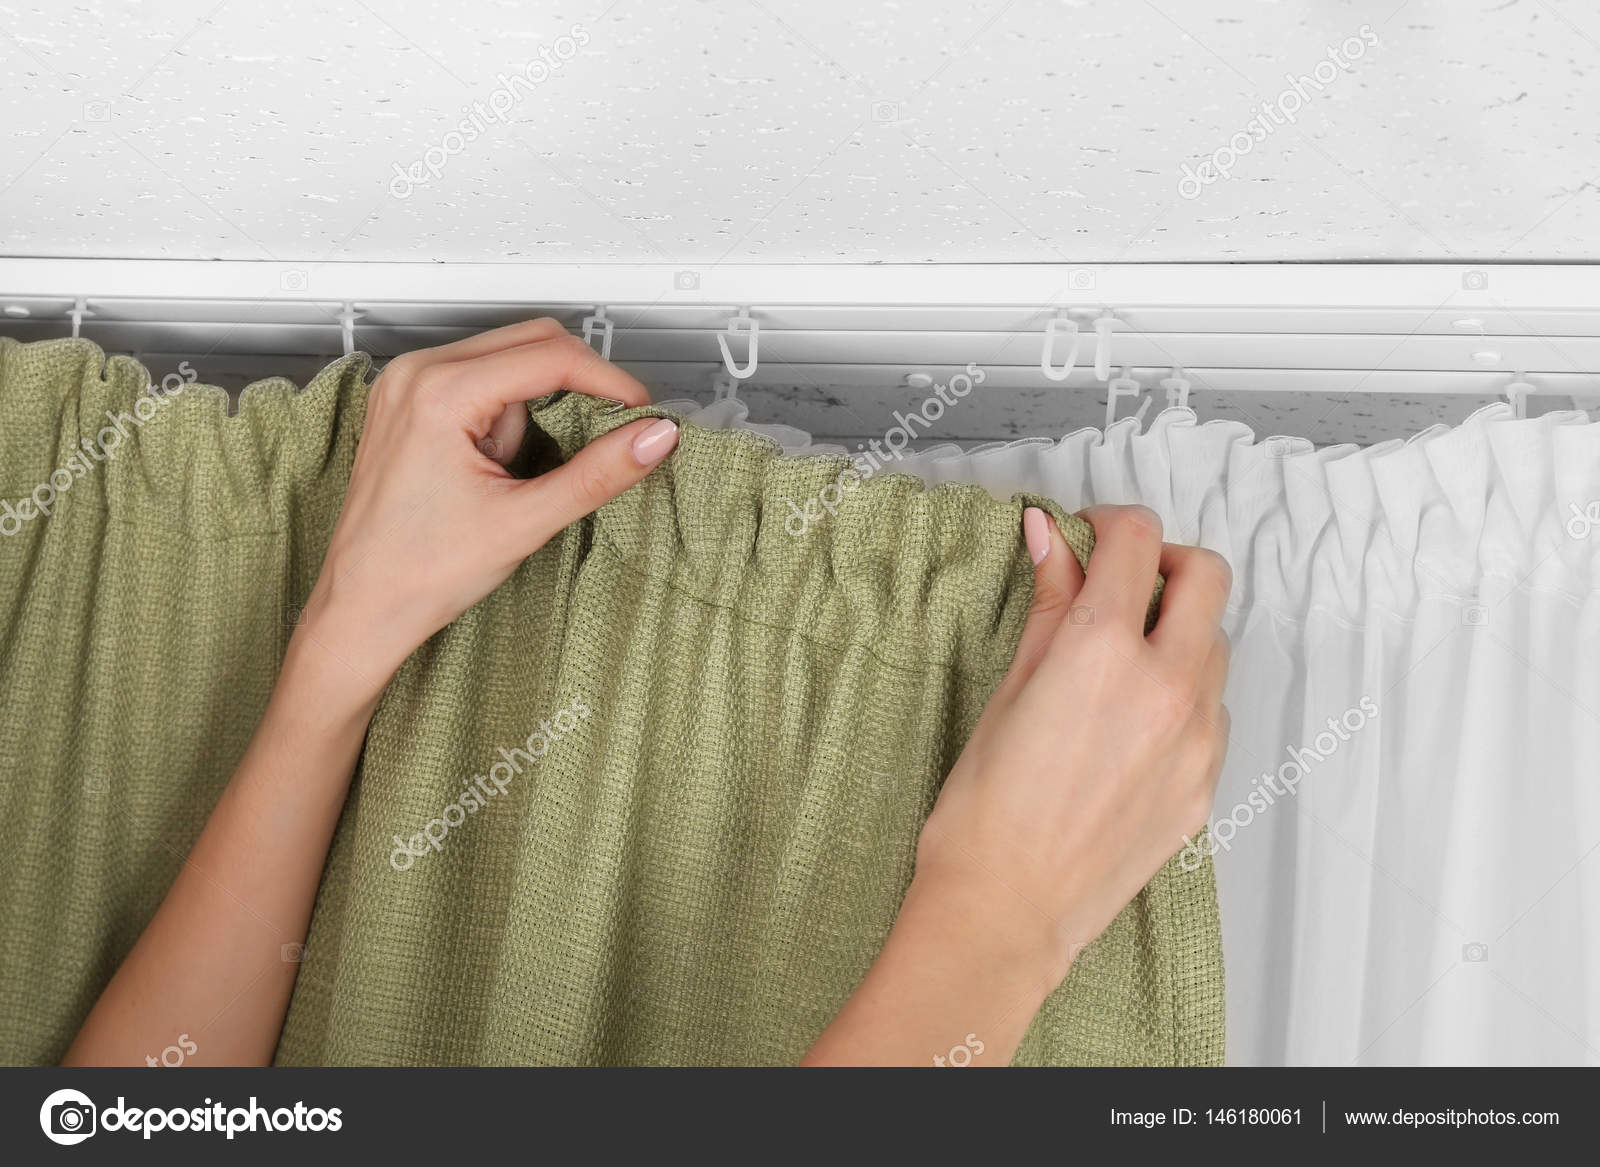 Hands Installing Curtains U2014 Stock Photo #146180061